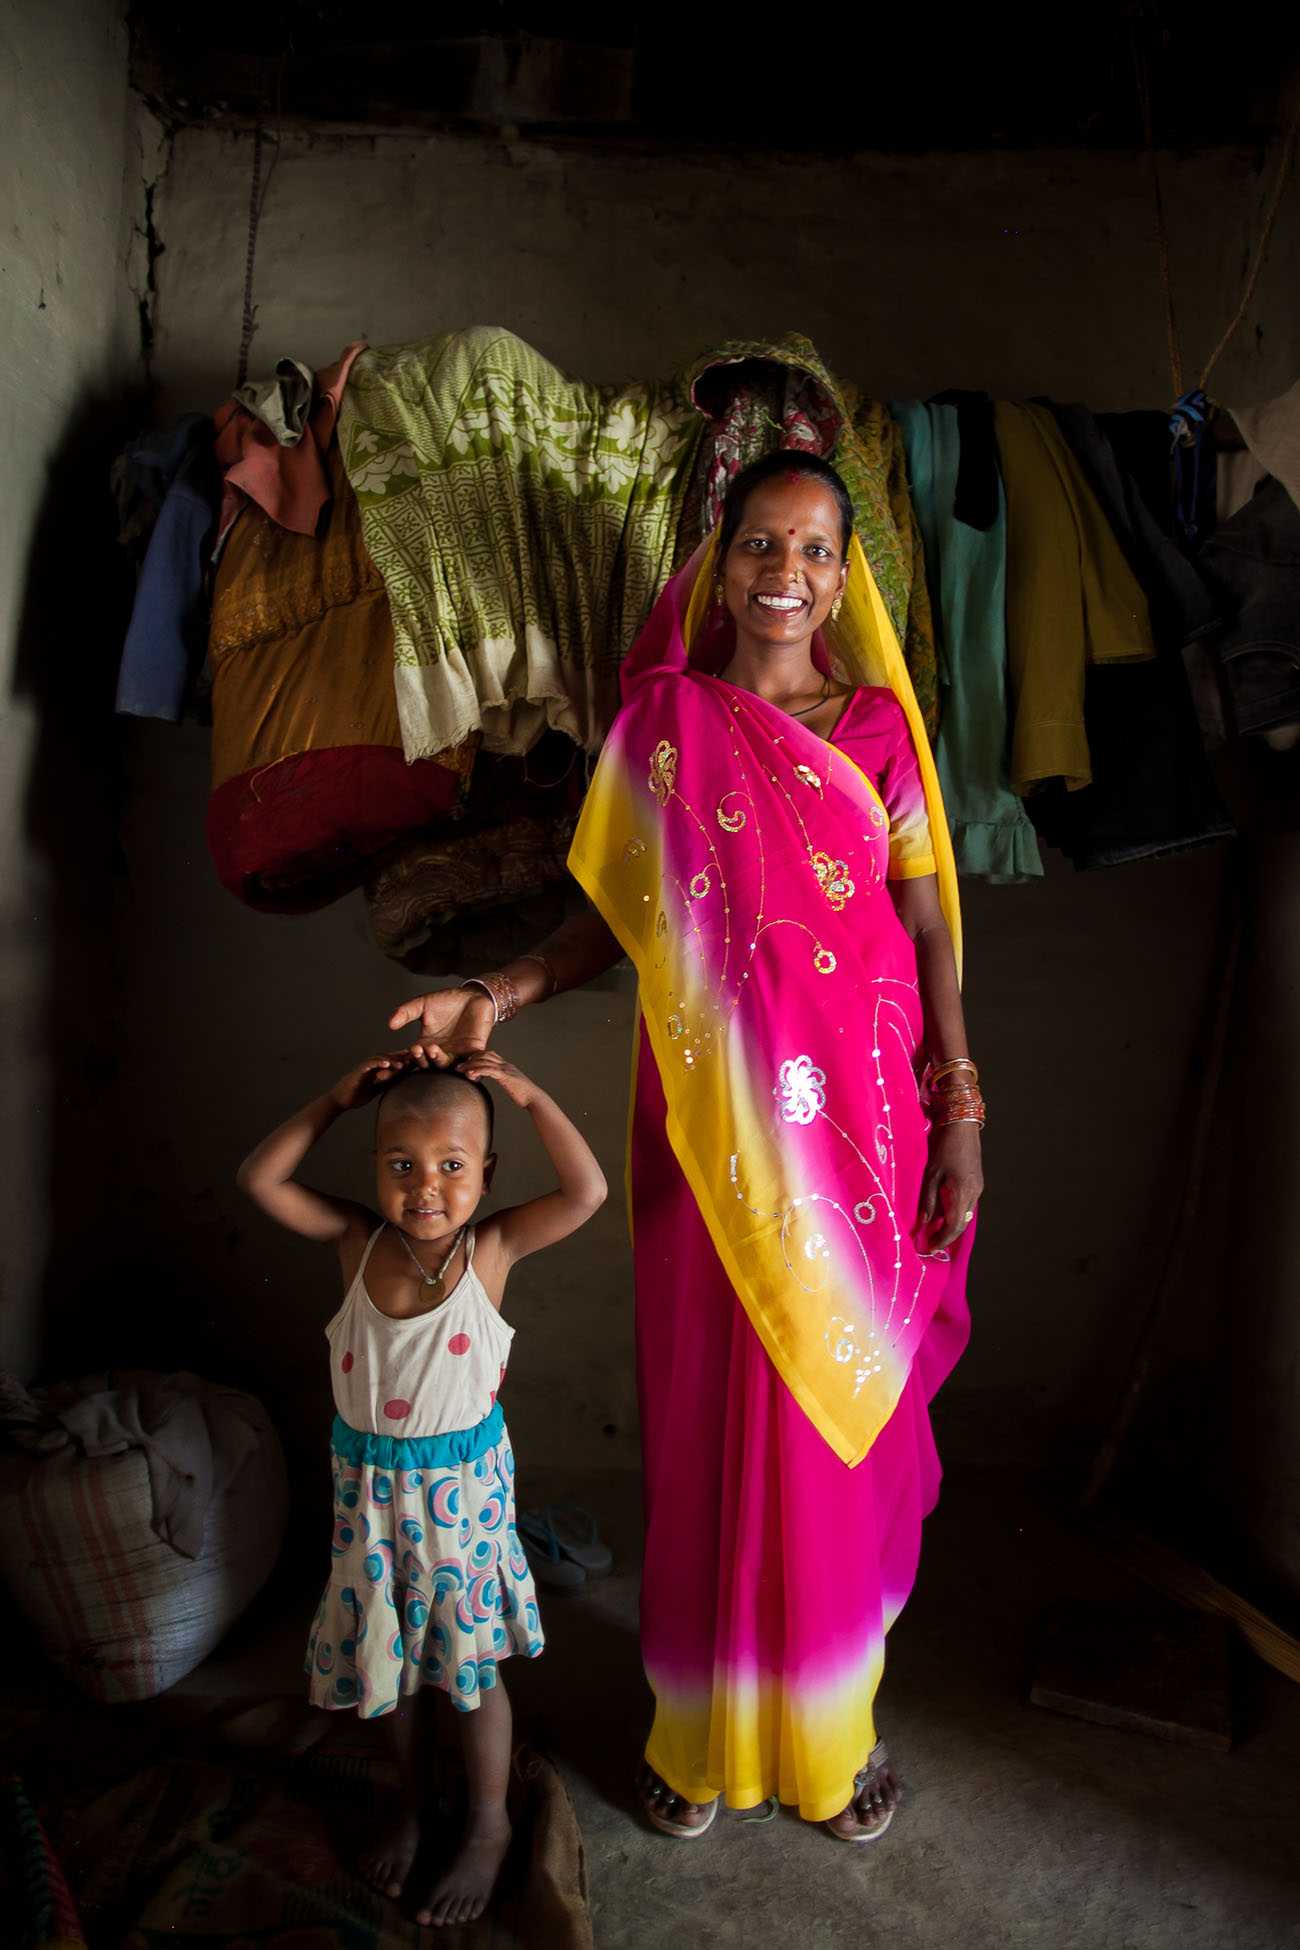 A happy mother in India with her young child.